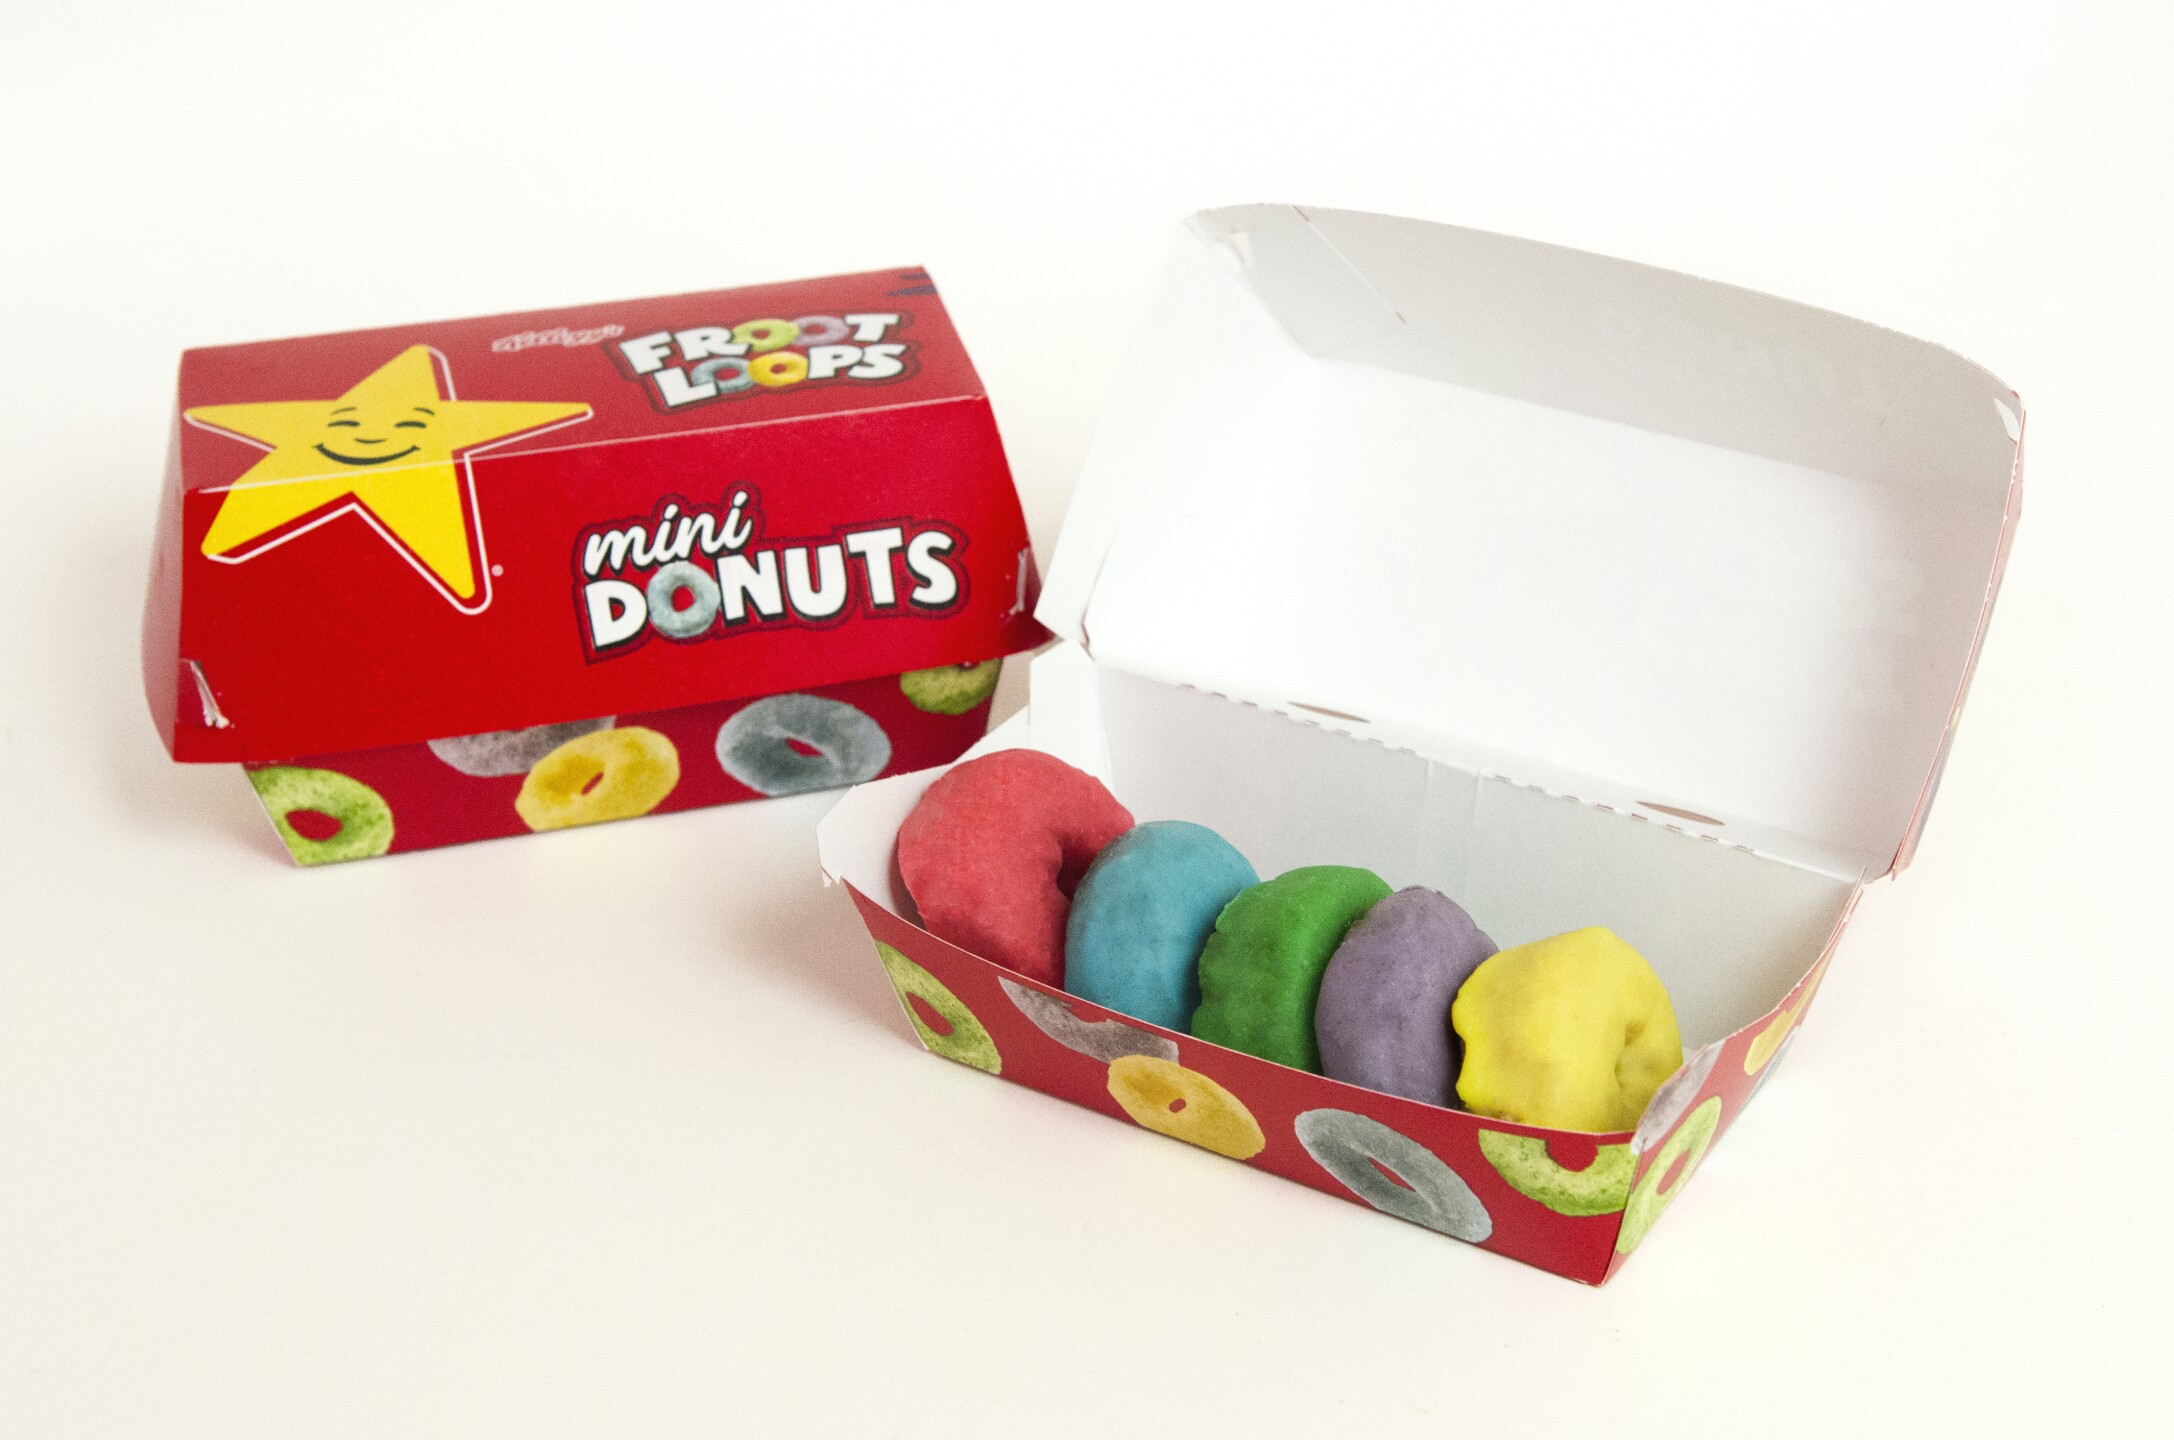 Photos: Hardee's launches new Froot Loopsdonuts